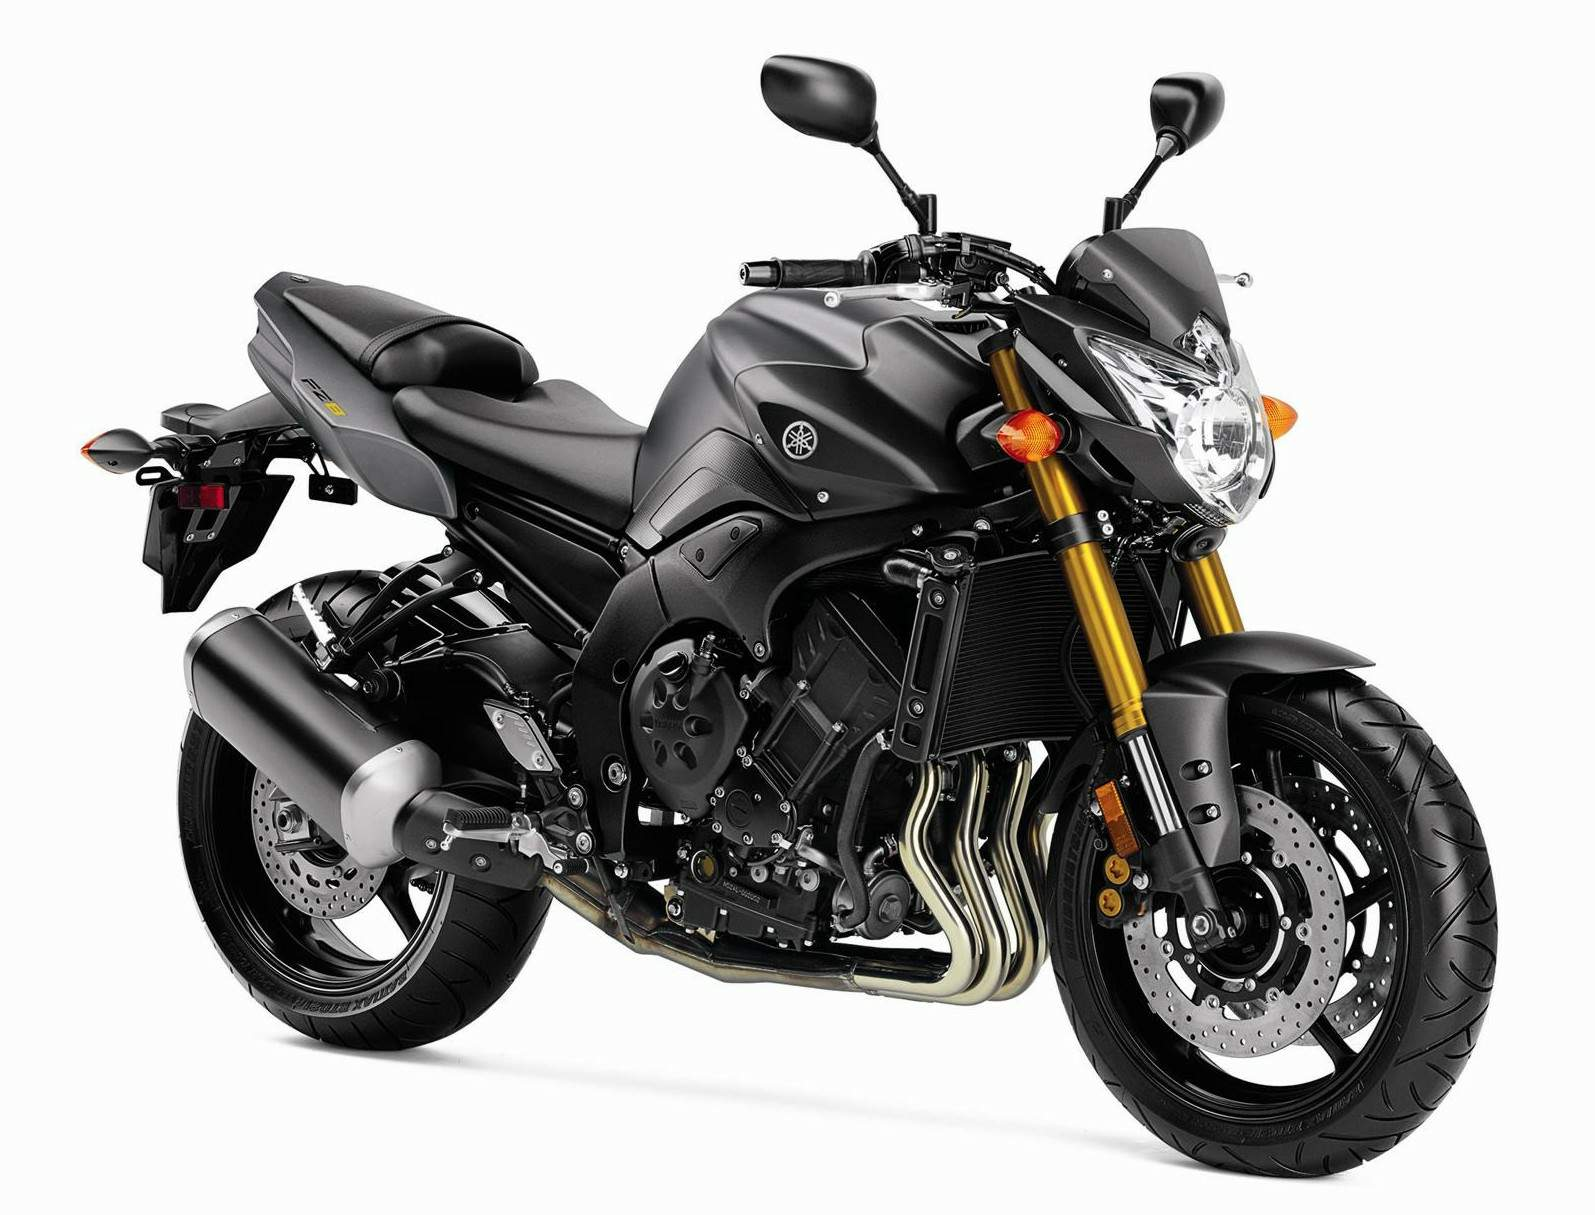 YAMAHA FZ 8 Reviews, Price, Specifications, Mileage